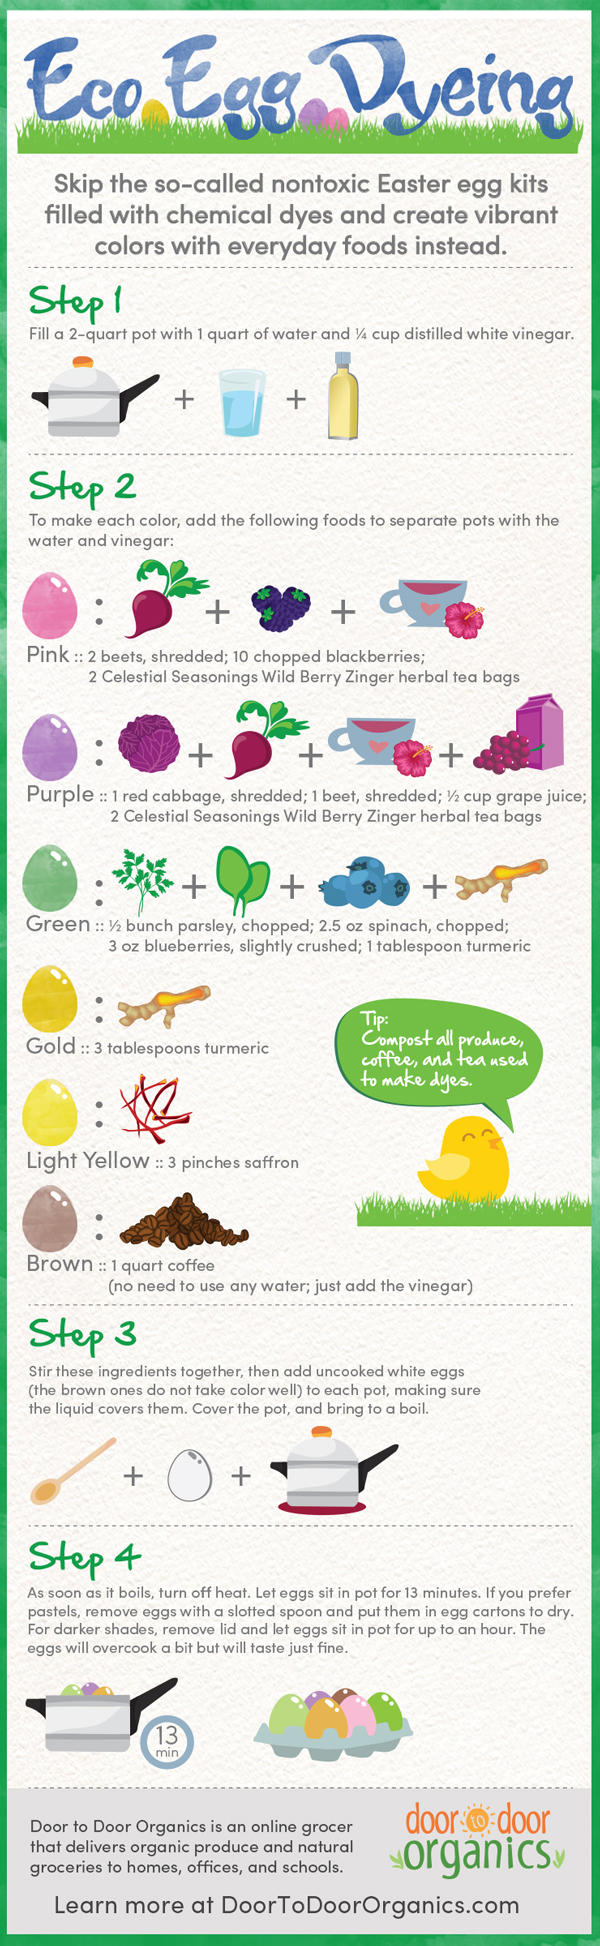 Skip The Chemicals With This Eco-Friendly Easter Egg Dyeing Guide Infographic